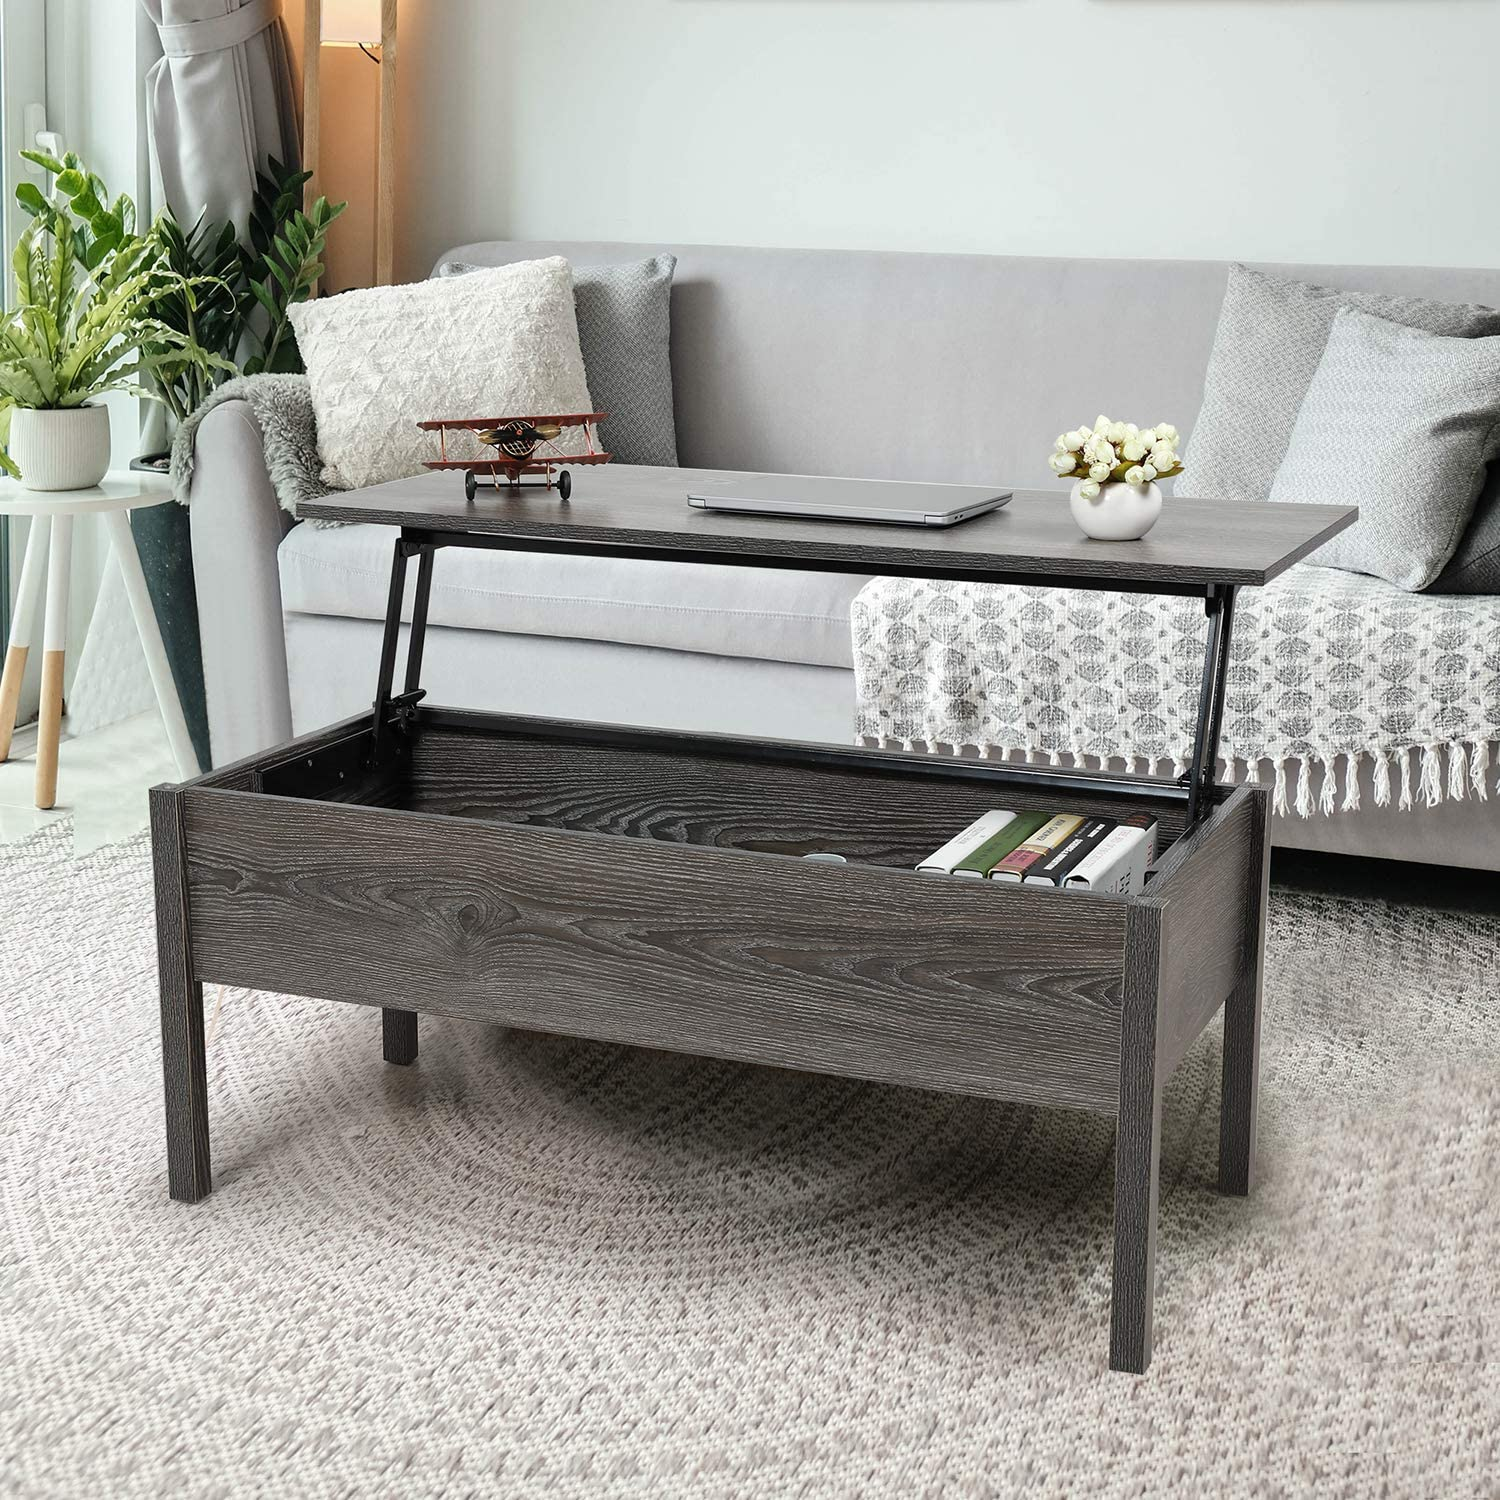 We OFFer at cheap prices JAXPETY Lift Top Coffee Table and Hidden Bombing free shipping Compartment with Storag